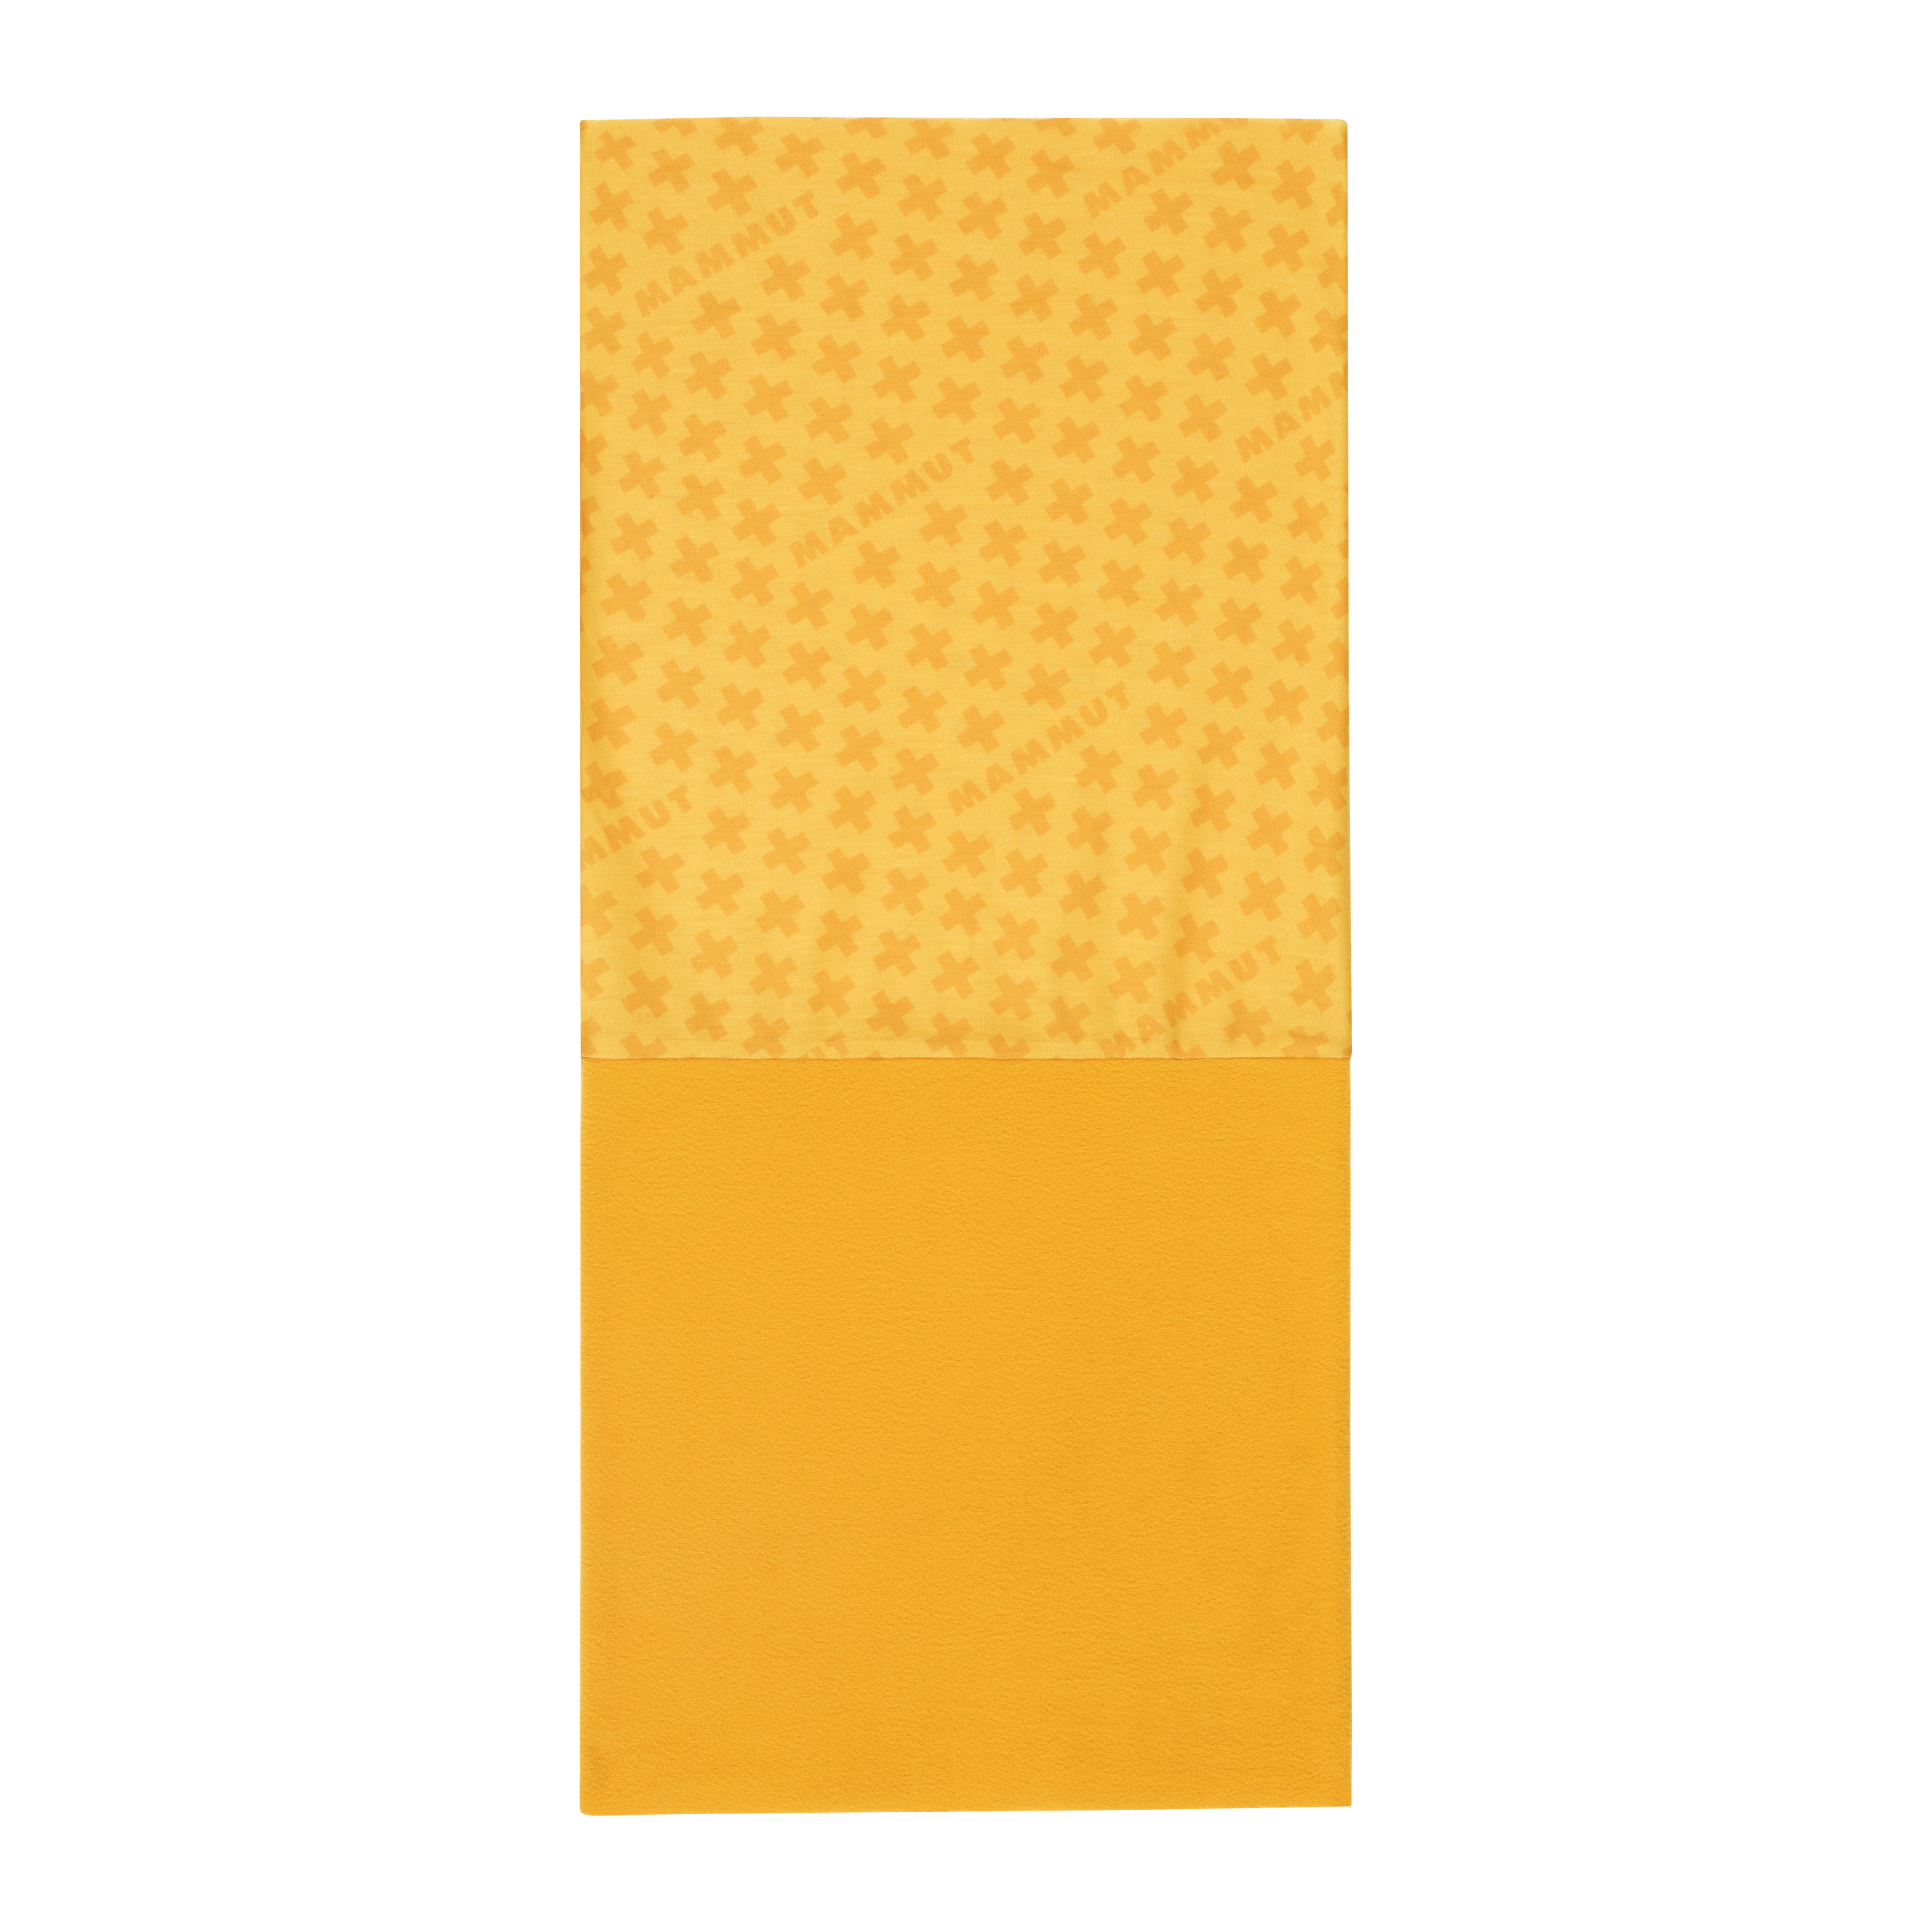 Mammut Thermo Neck Gaiter - golden, one size product image